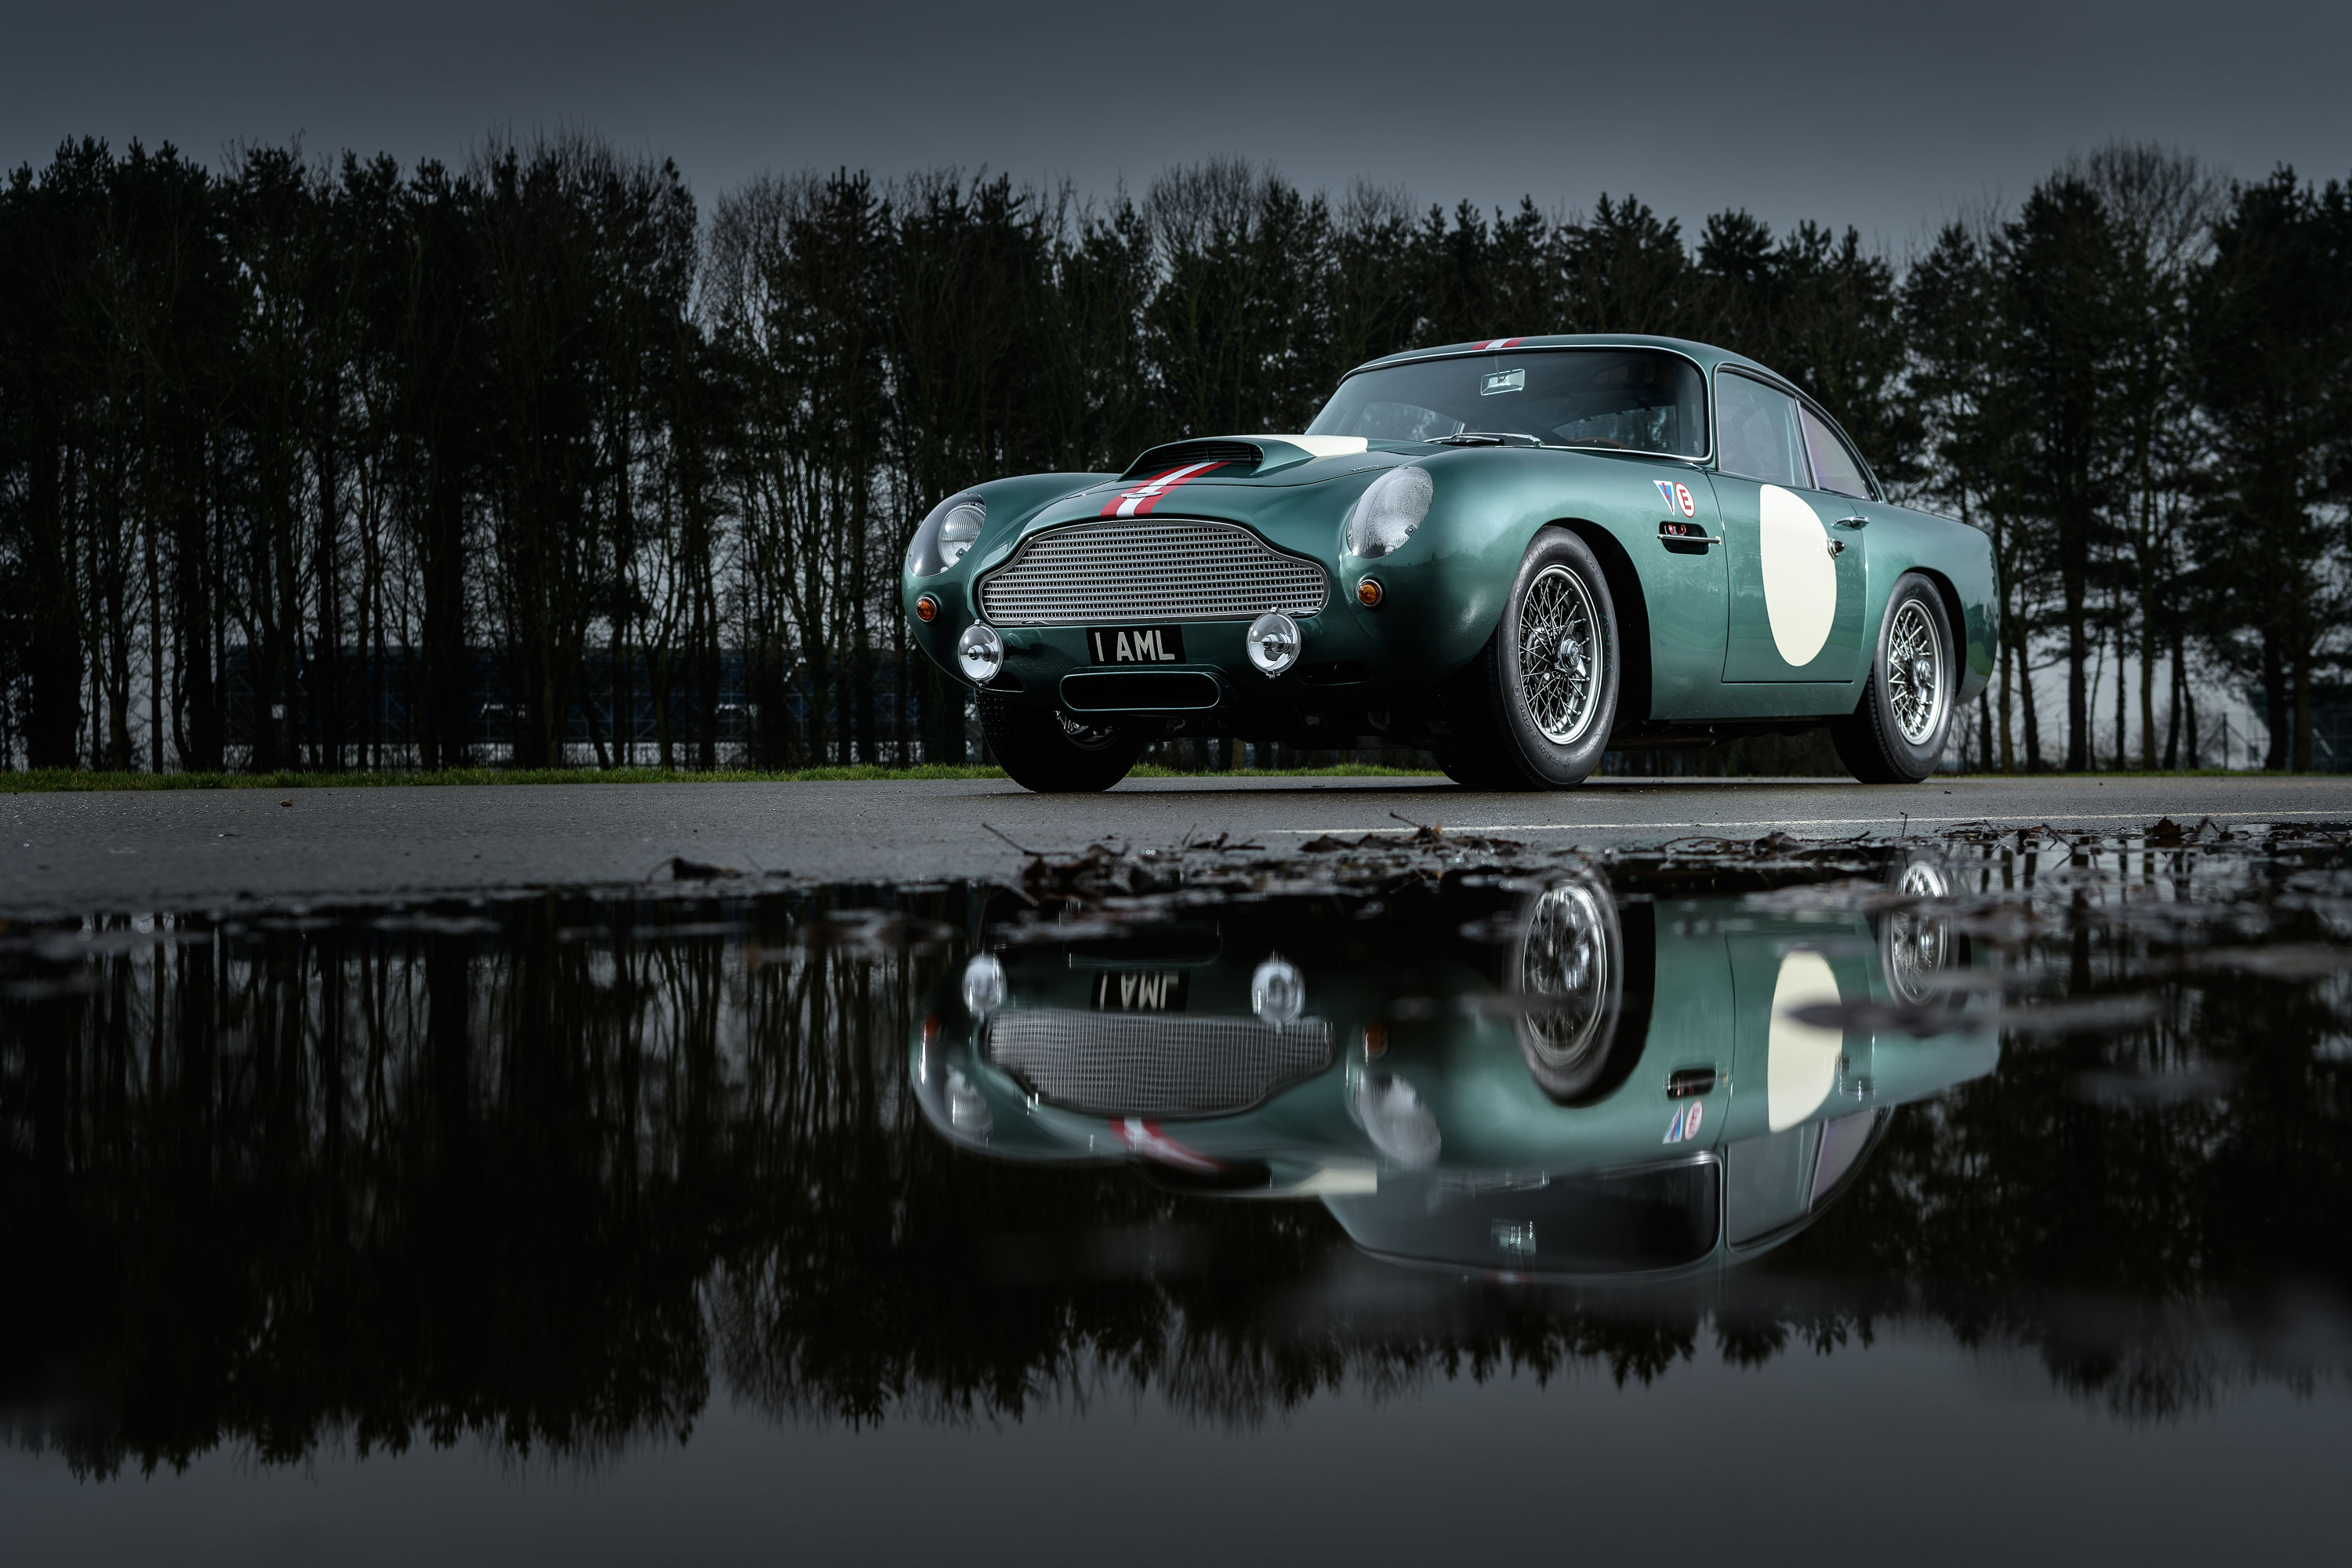 Aston Martin DB4 GT reflection